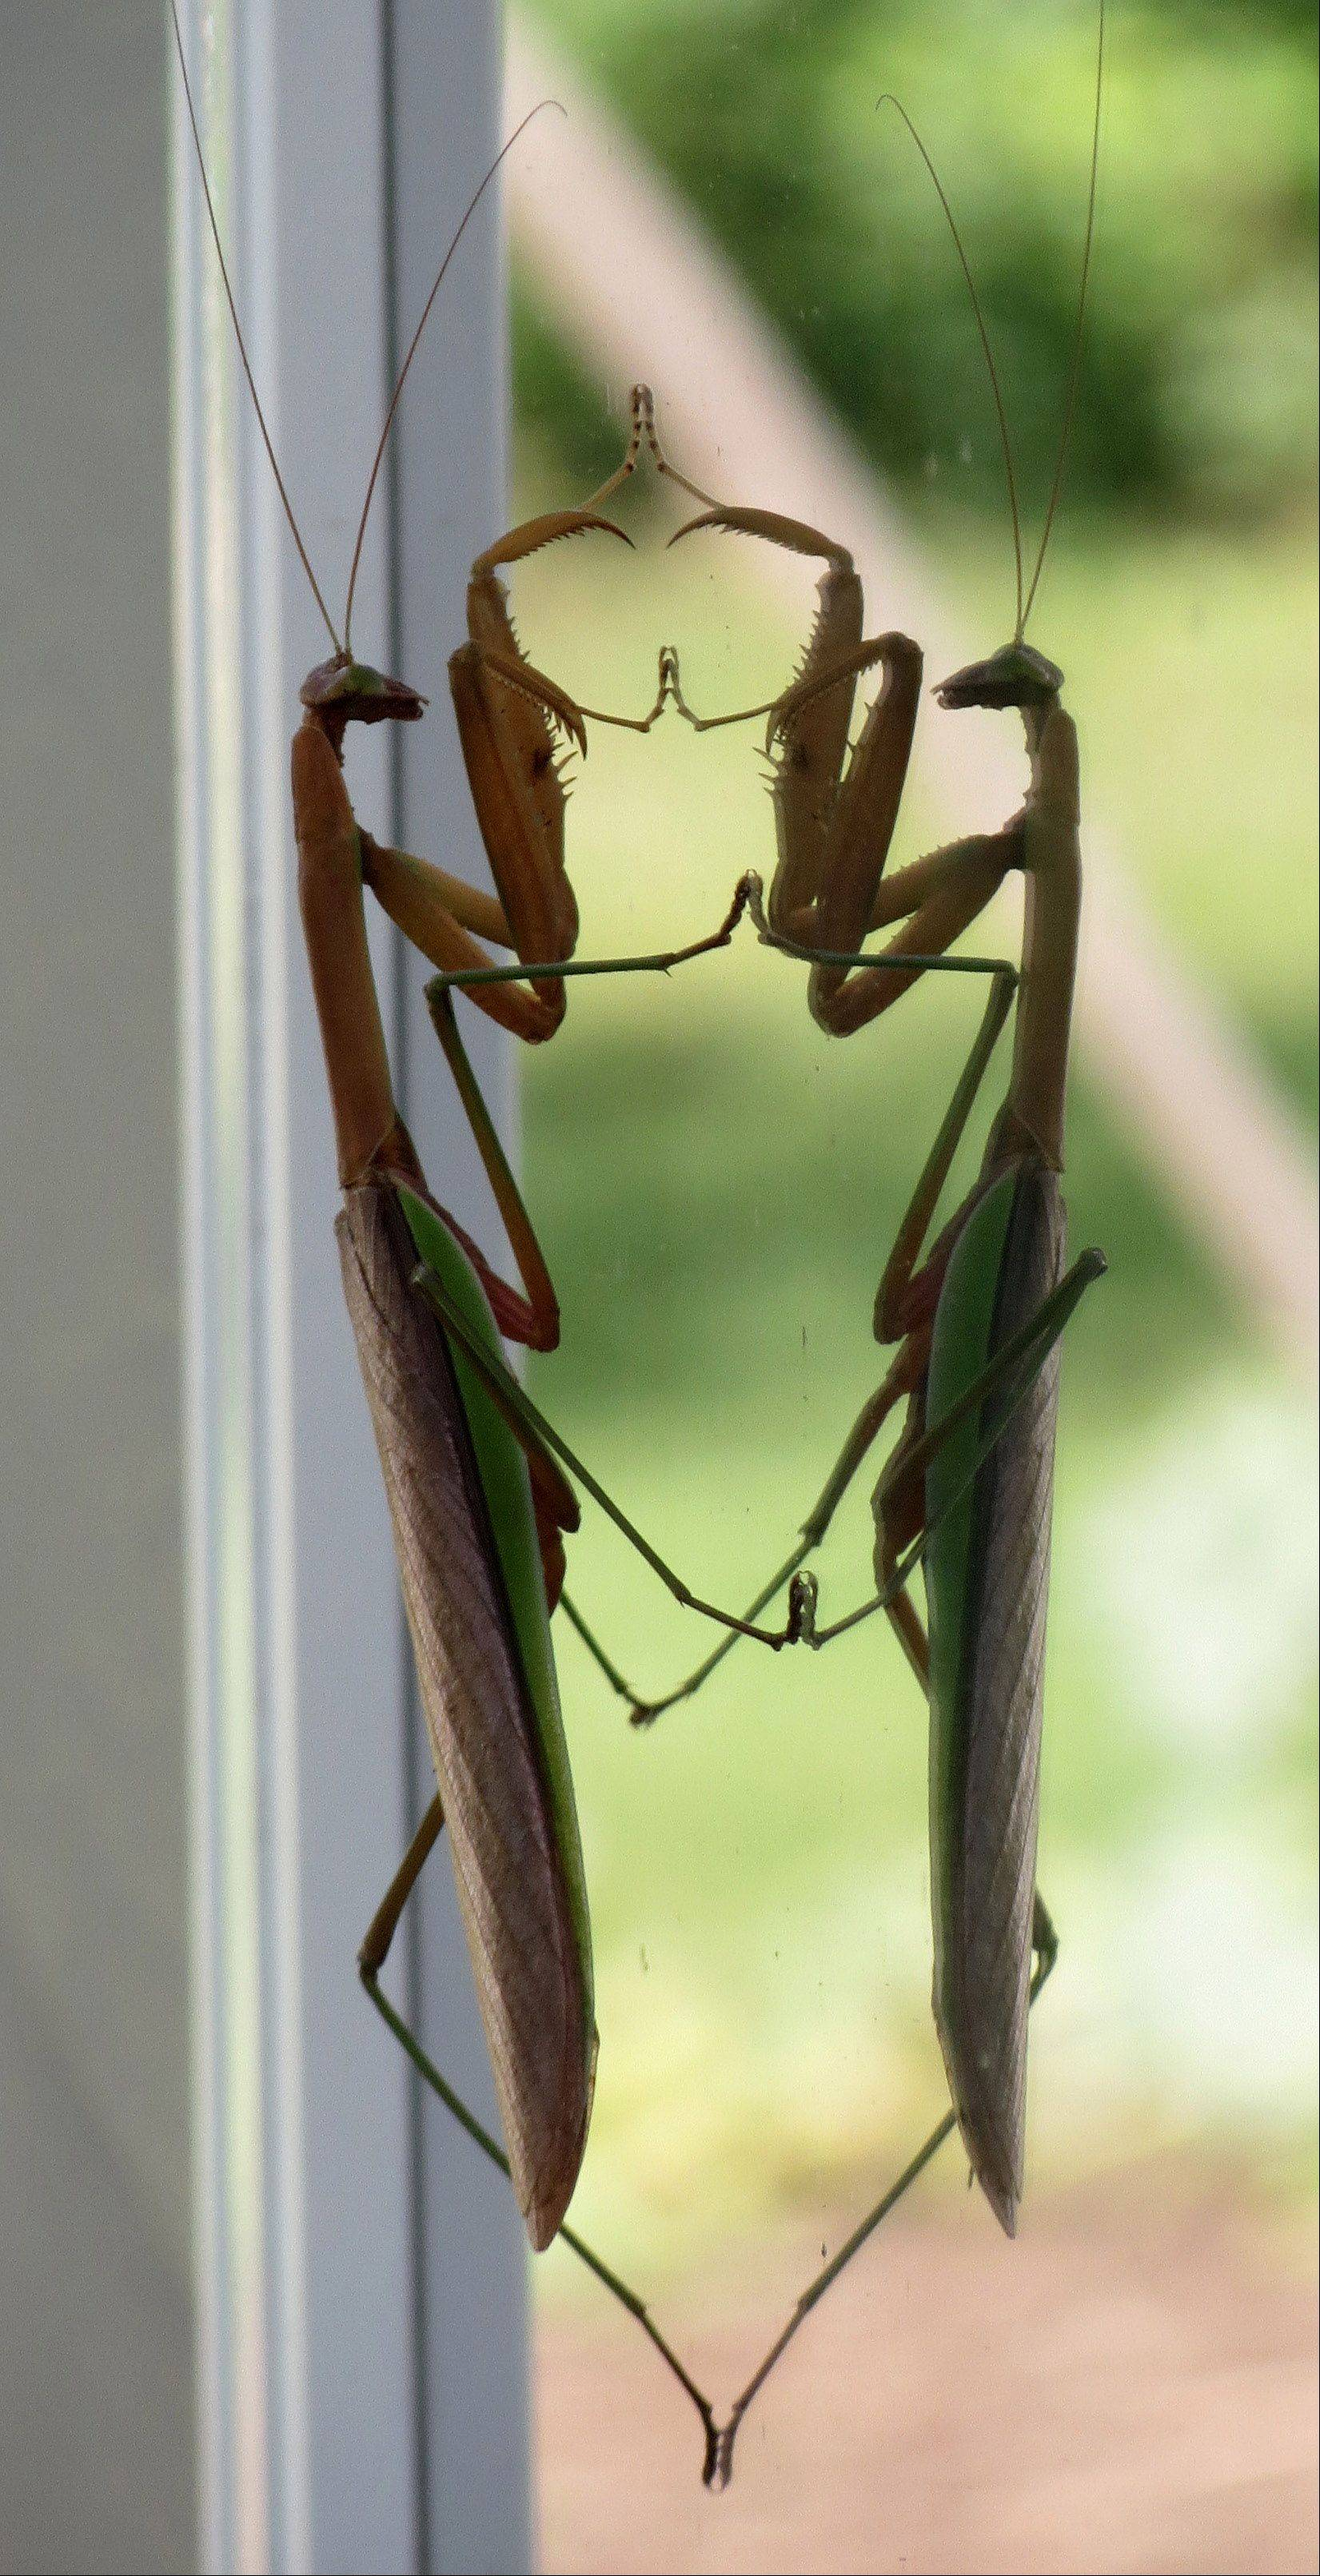 Eugene Bordelon of Warrenville took first place in our September Photo Finish contest with this image of a praying mantis.